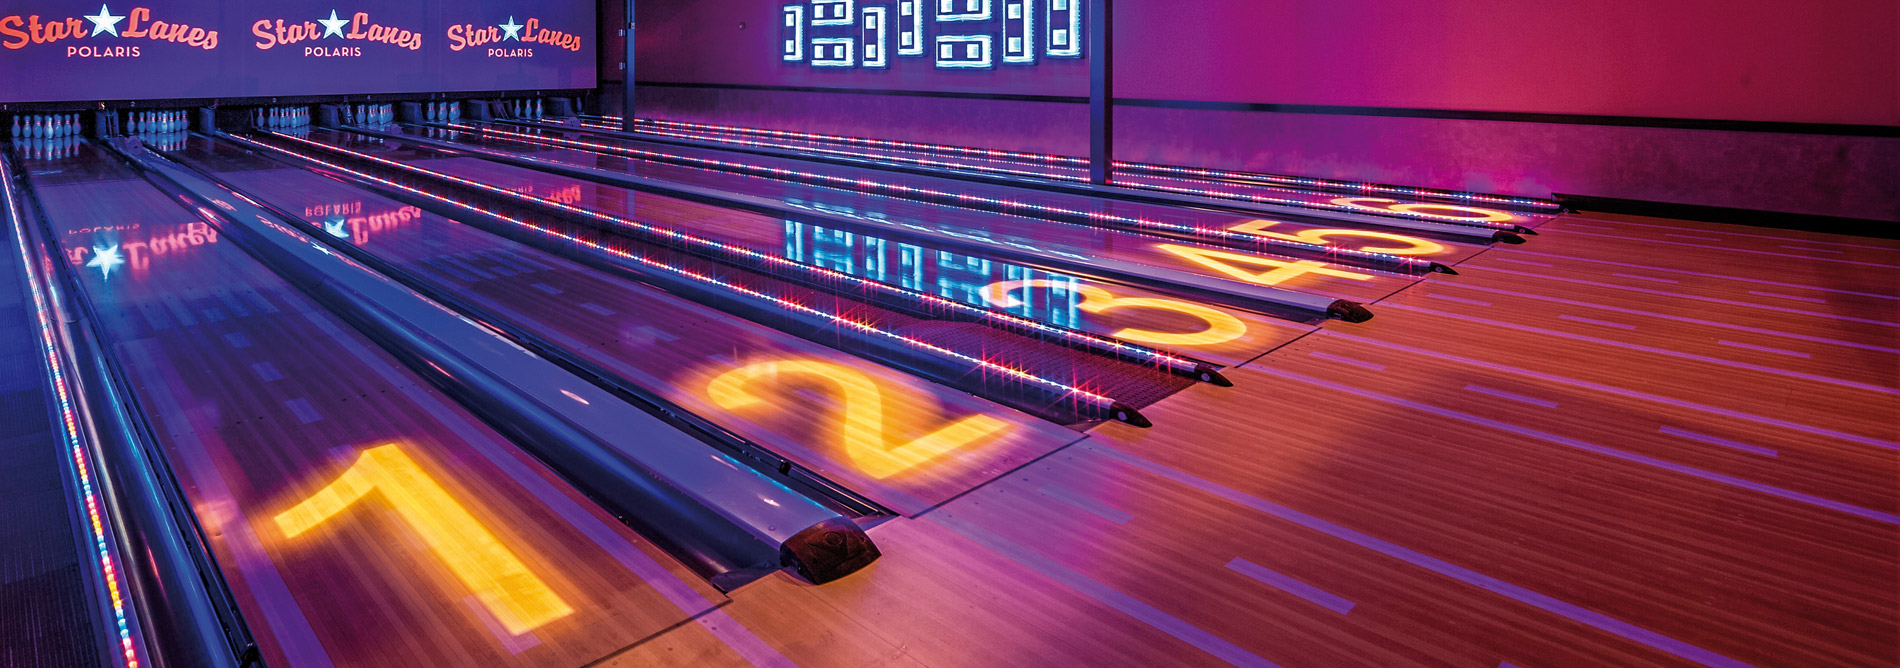 hight resolution of bowling qubicaamf lanes xtreme capping lights banner jpg